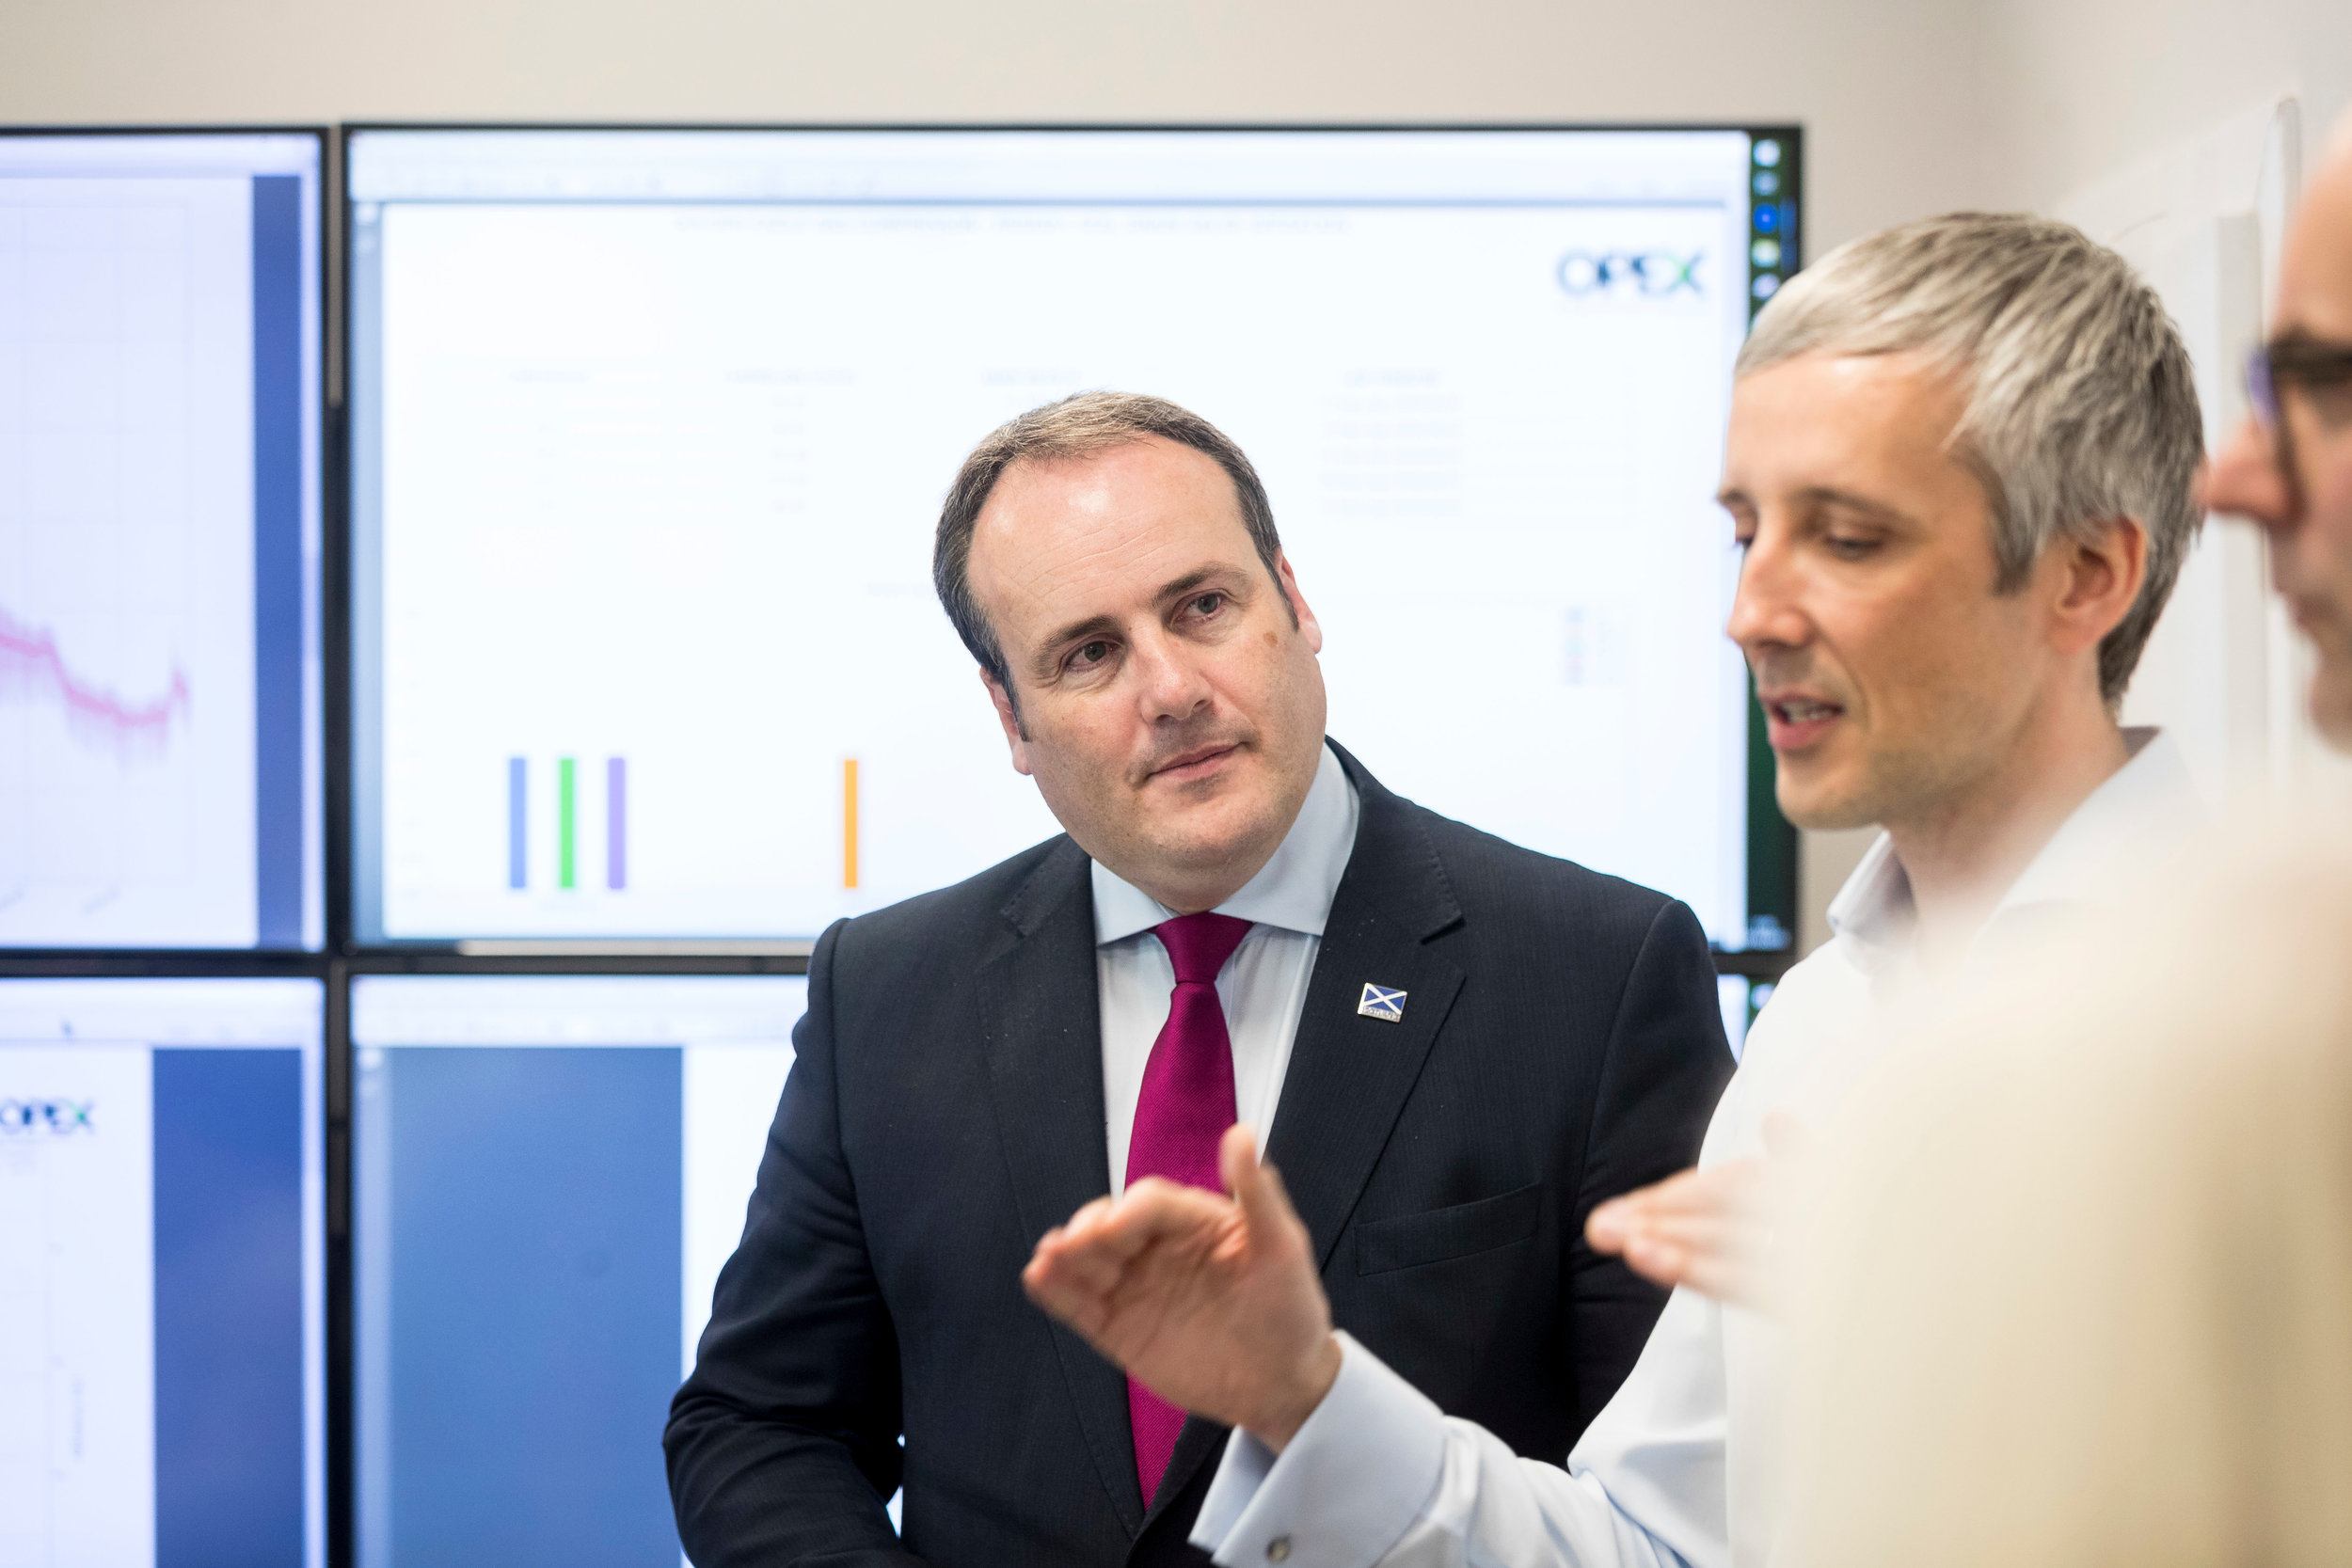 Paul Wheelhouse meets with OPEX's data scientists